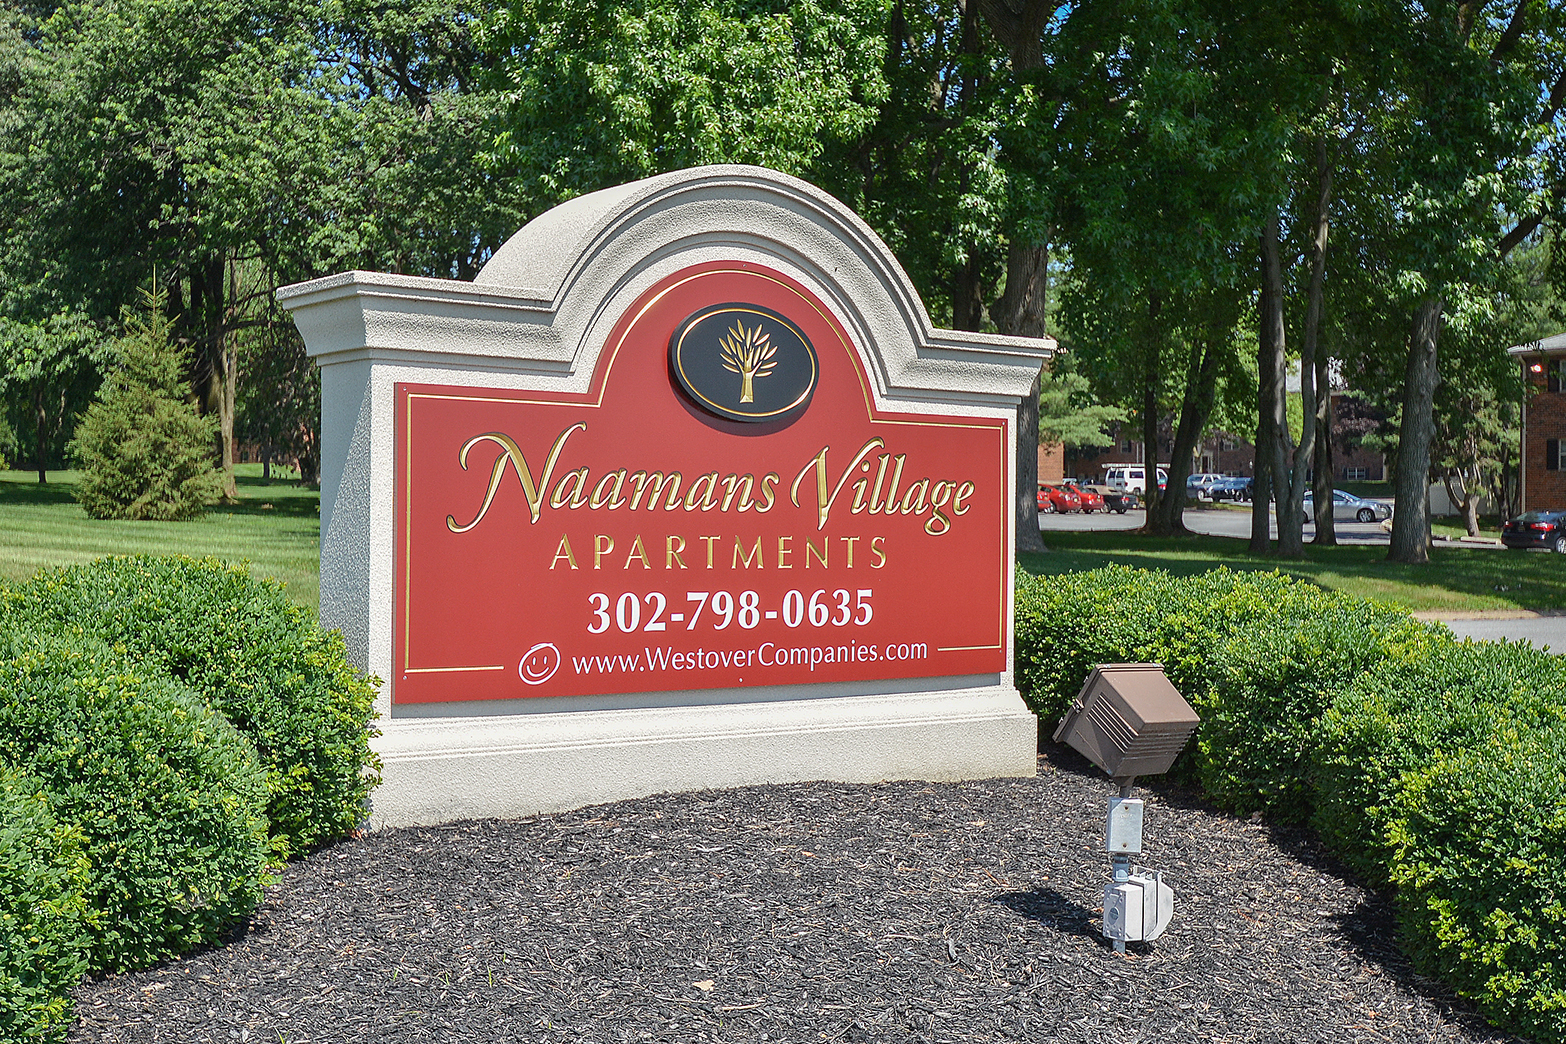 Naamans Village Apartments, Claymont, DE | Claymont, DE Apartments for Rent